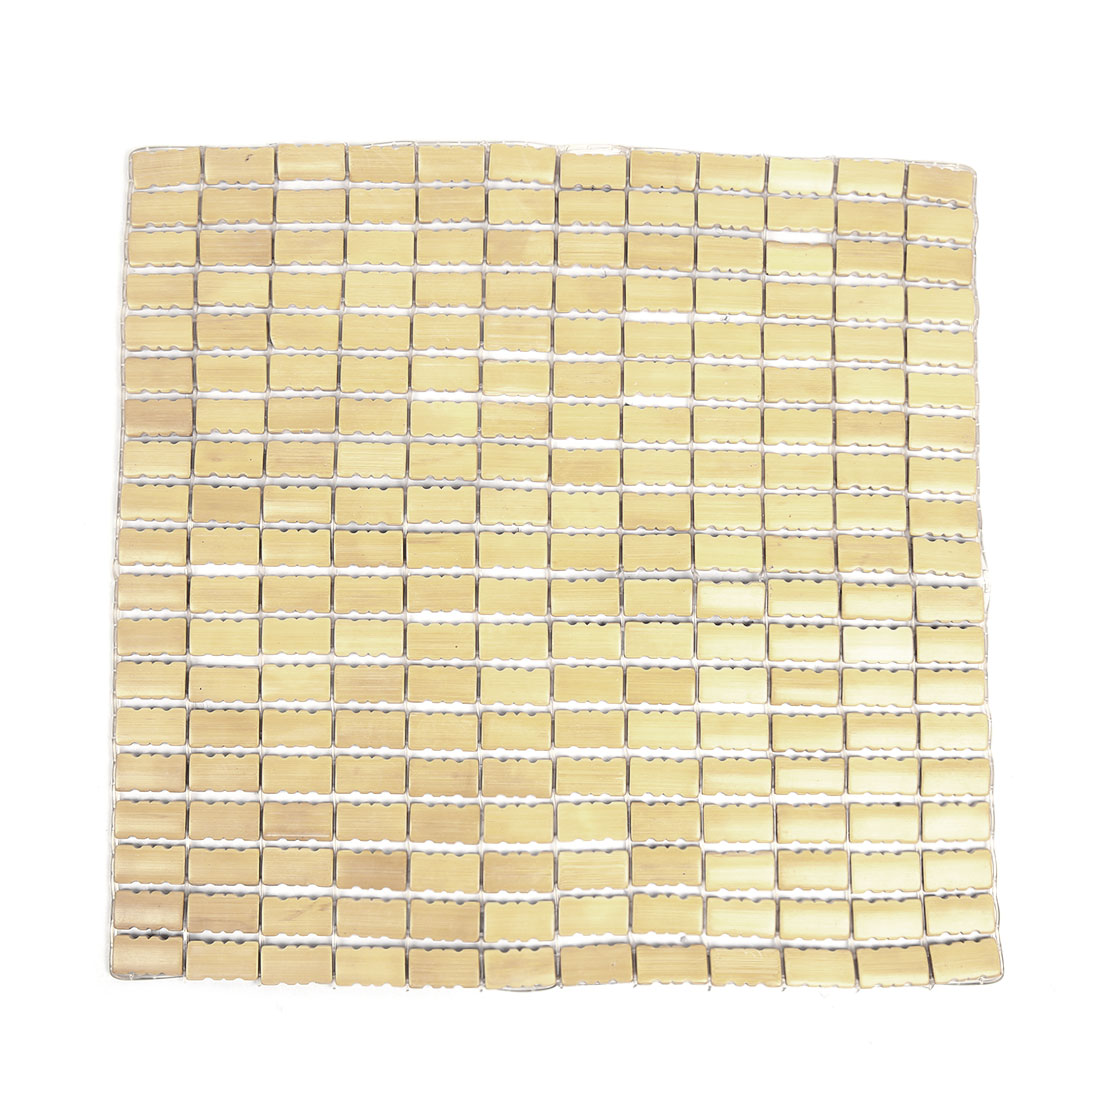 Beige Wooden Multi Beads 43cm x 43cm  Cushion Cover Pad for Car Vehicle